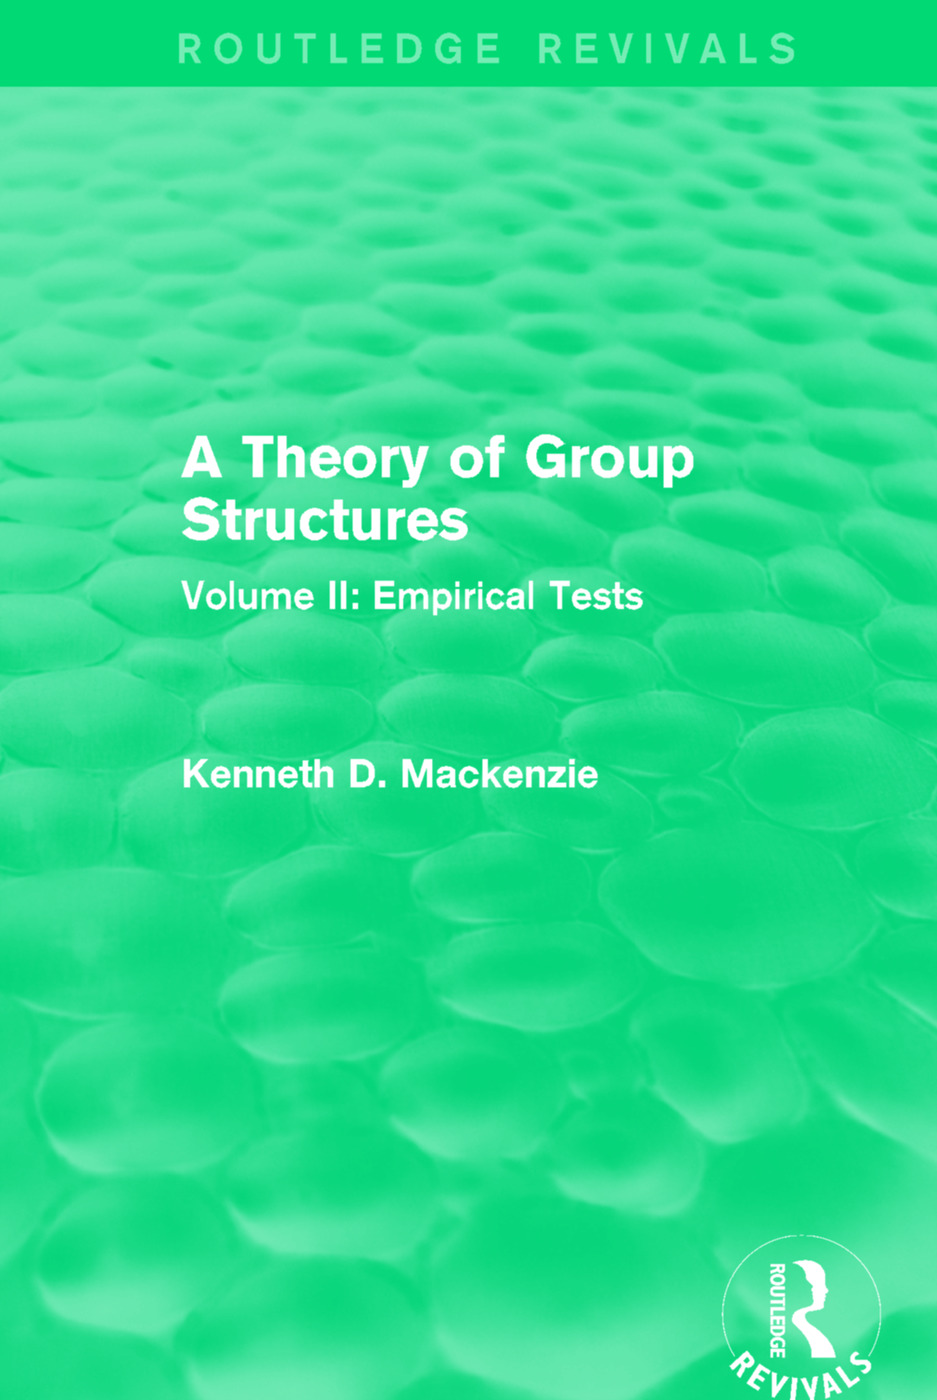 A Theory of Group Structures: Volume II: Empirical Tests, 1st Edition (Paperback) book cover